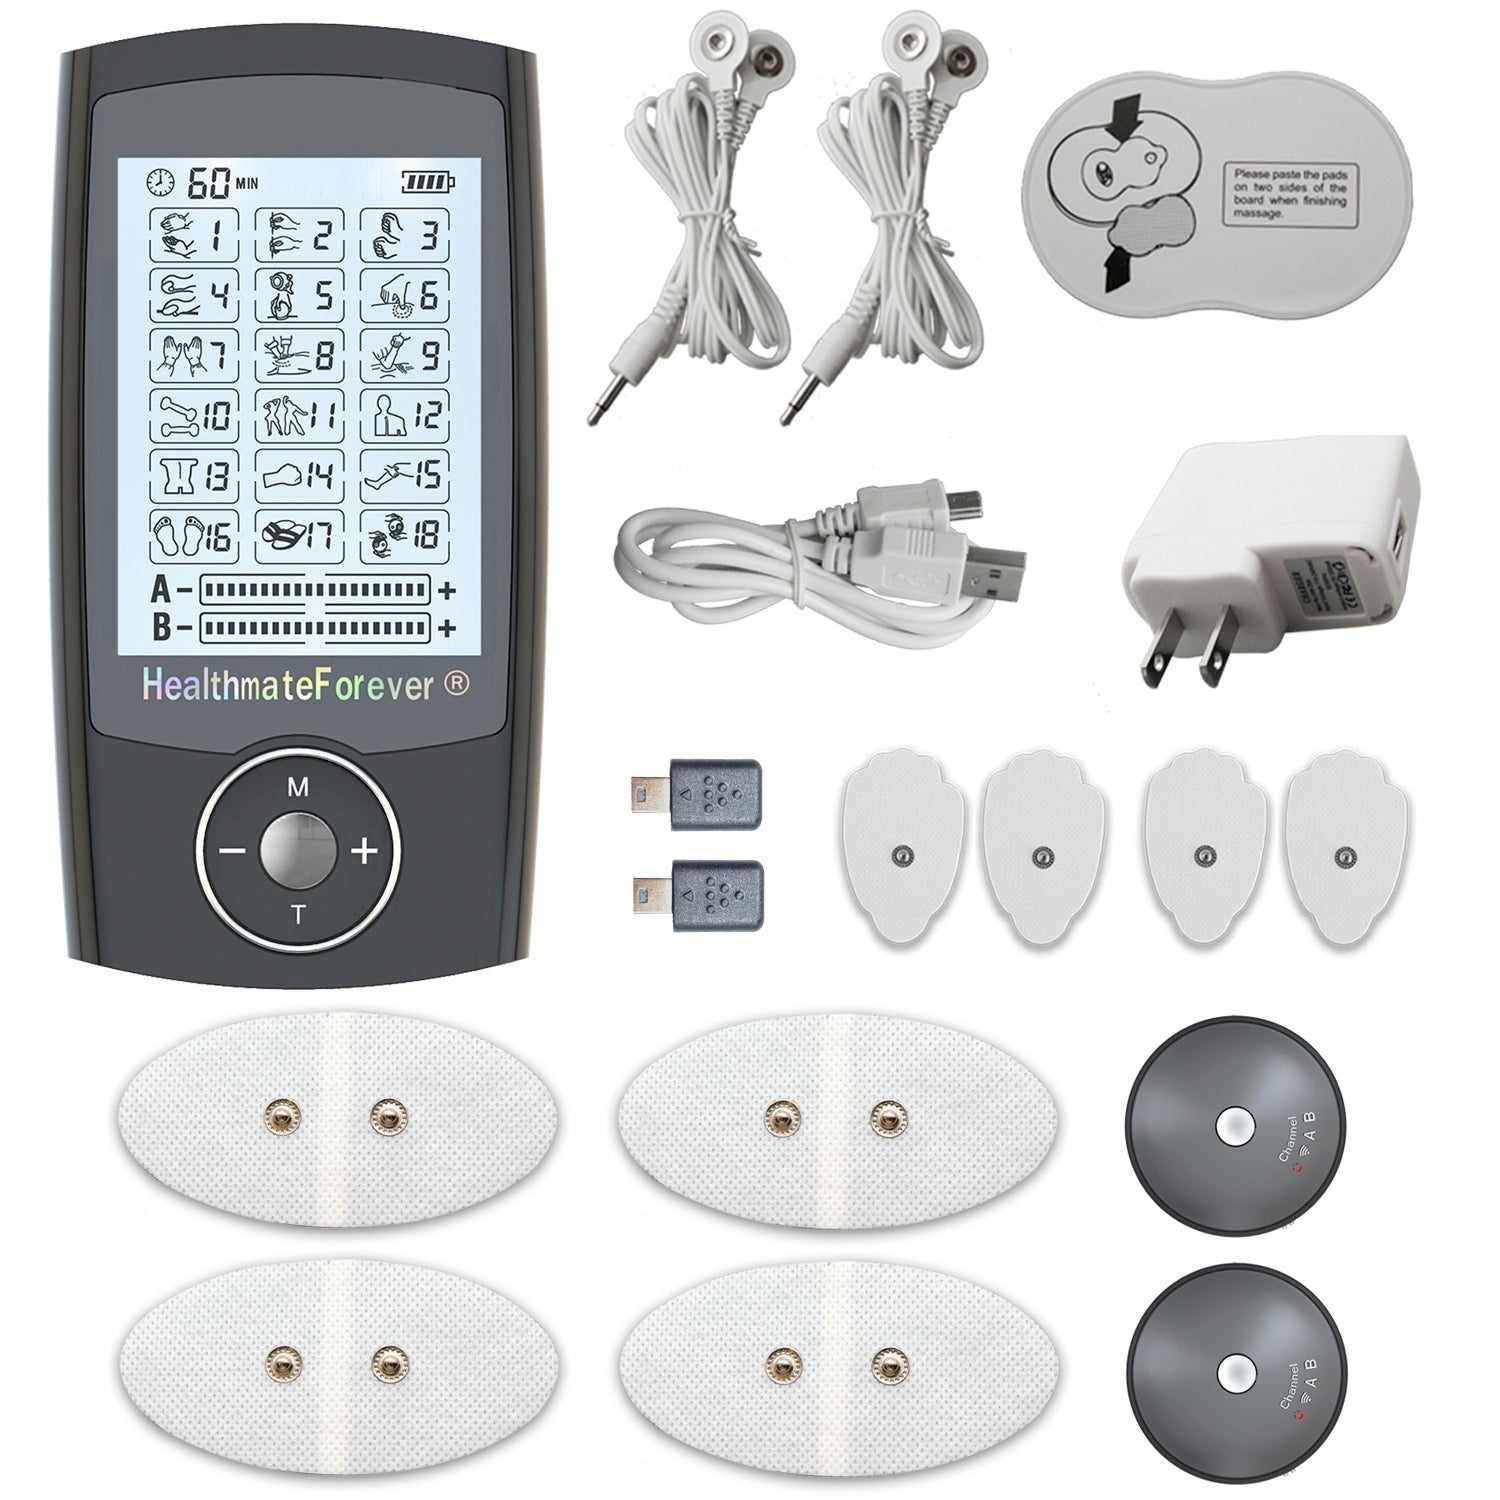 PRO18AB Pain Relief TENS Unit & Muscle Stimulator - 2 Year Warranty - HealthmateForever